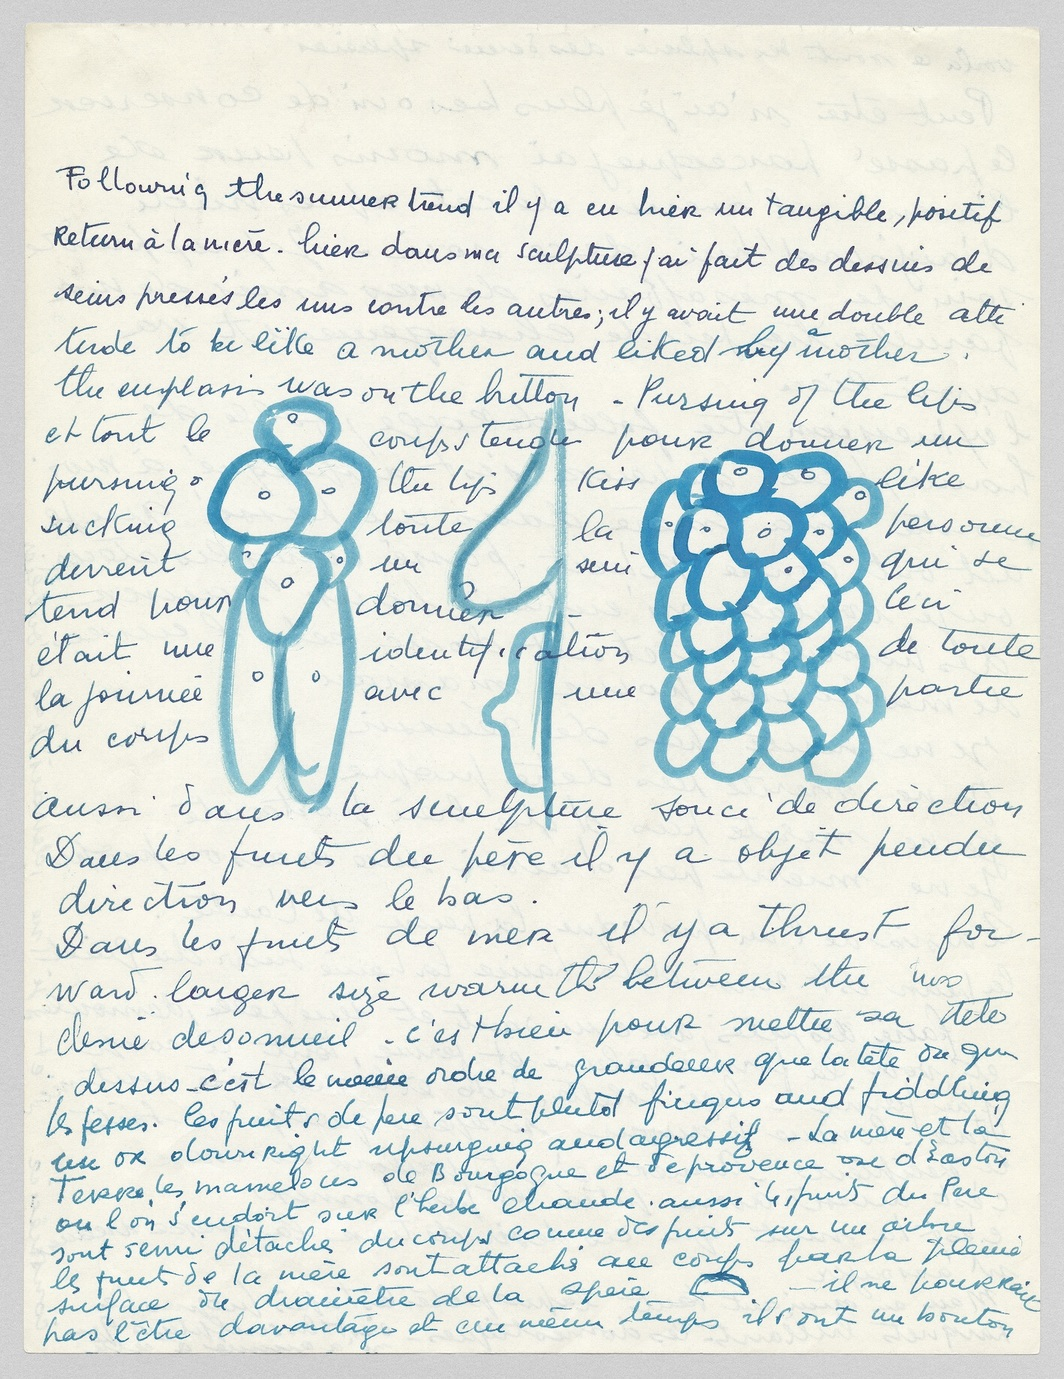 Louise Bourgeois, loose sheet of writing, c. 1959, handwritten in turquoise blue ink on off-white paper, 11 x 8 1/2''. Louise Bourgeois Archive, LB-0464. © The Easton Foundation/Licensed by VAGA at Artists Rights Society (ARS), NY.